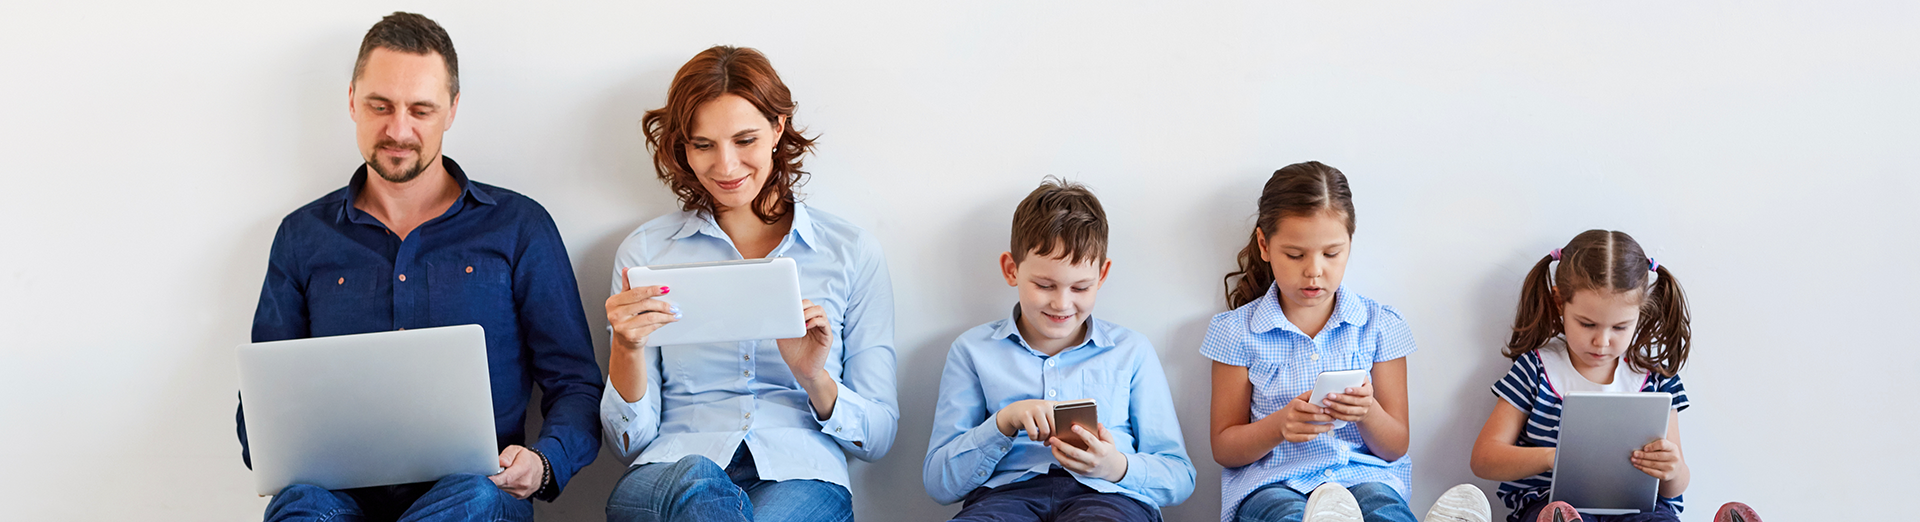 Family_using_devices_at_home